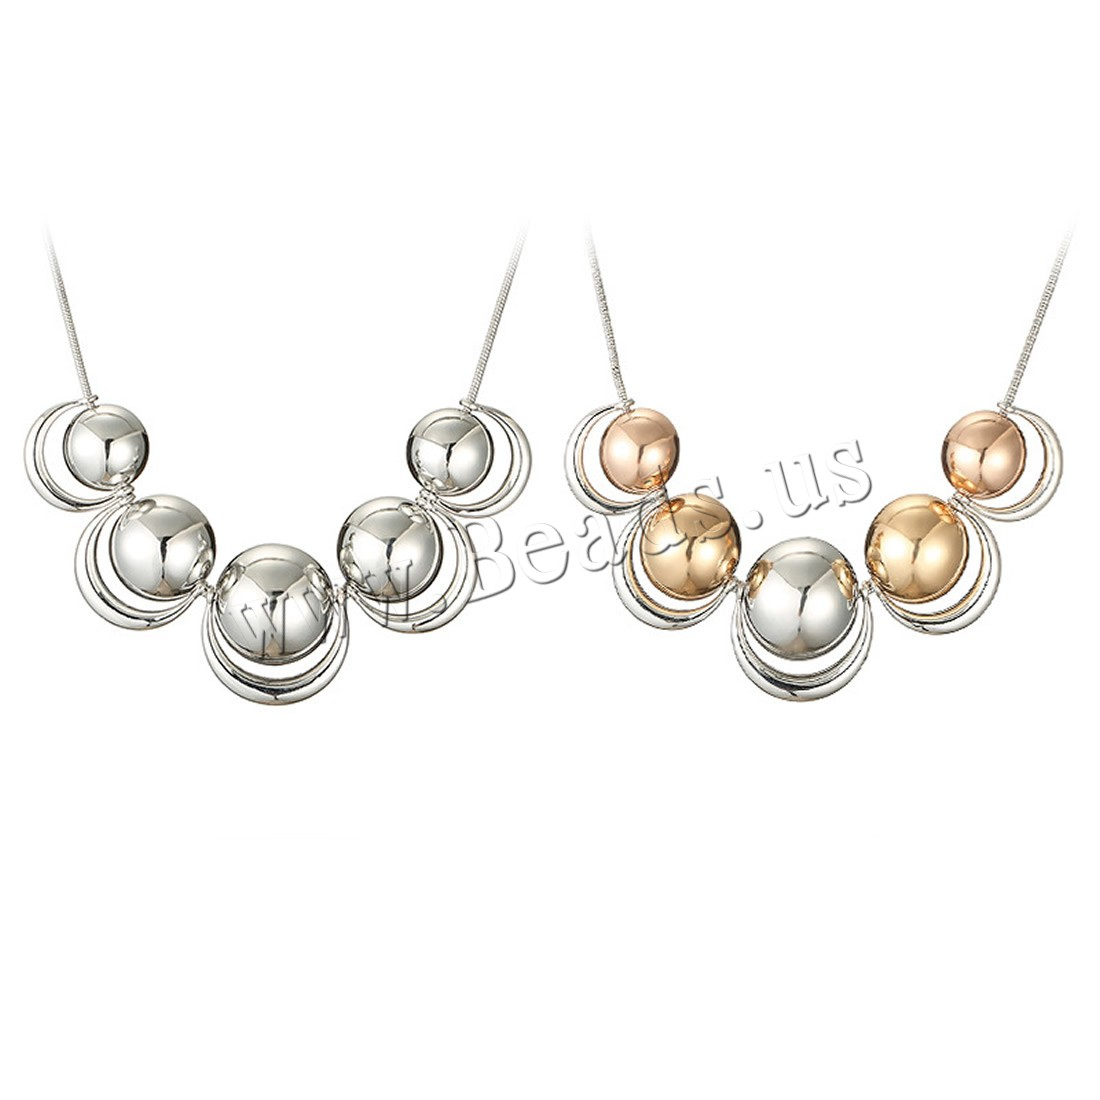 Buy Zinc Alloy Jewelry Necklace iron chain 5cm extender chain plated snake chain & woman colors choice lead & cadmium free 30mm Sold Per Approx 17.5 Inch Strand